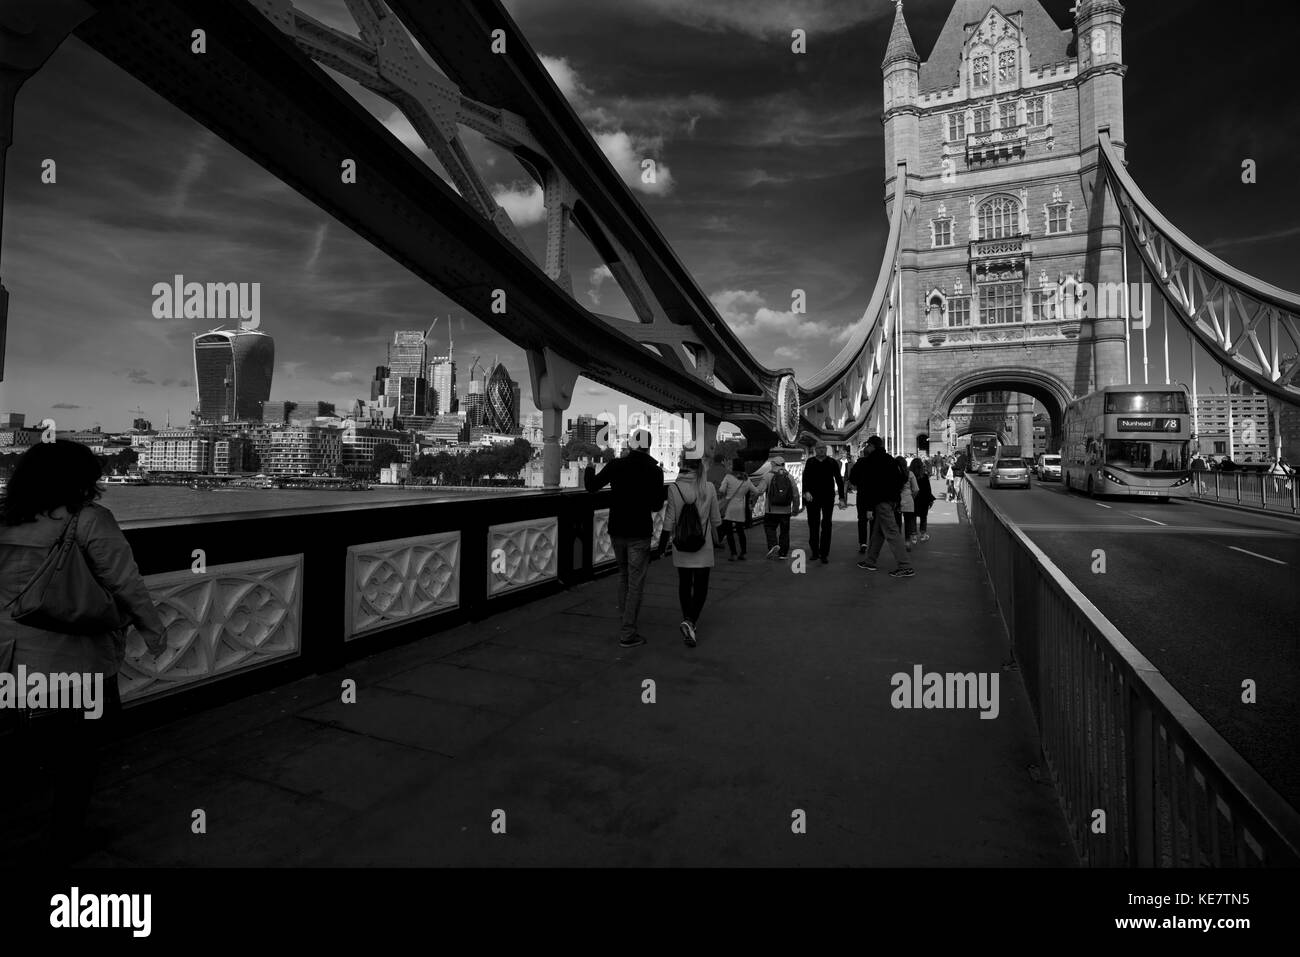 Tower Bridge across the River Thames in London England. Oct 2017 Tower Bridge is in London: it crosses the River - Stock Image